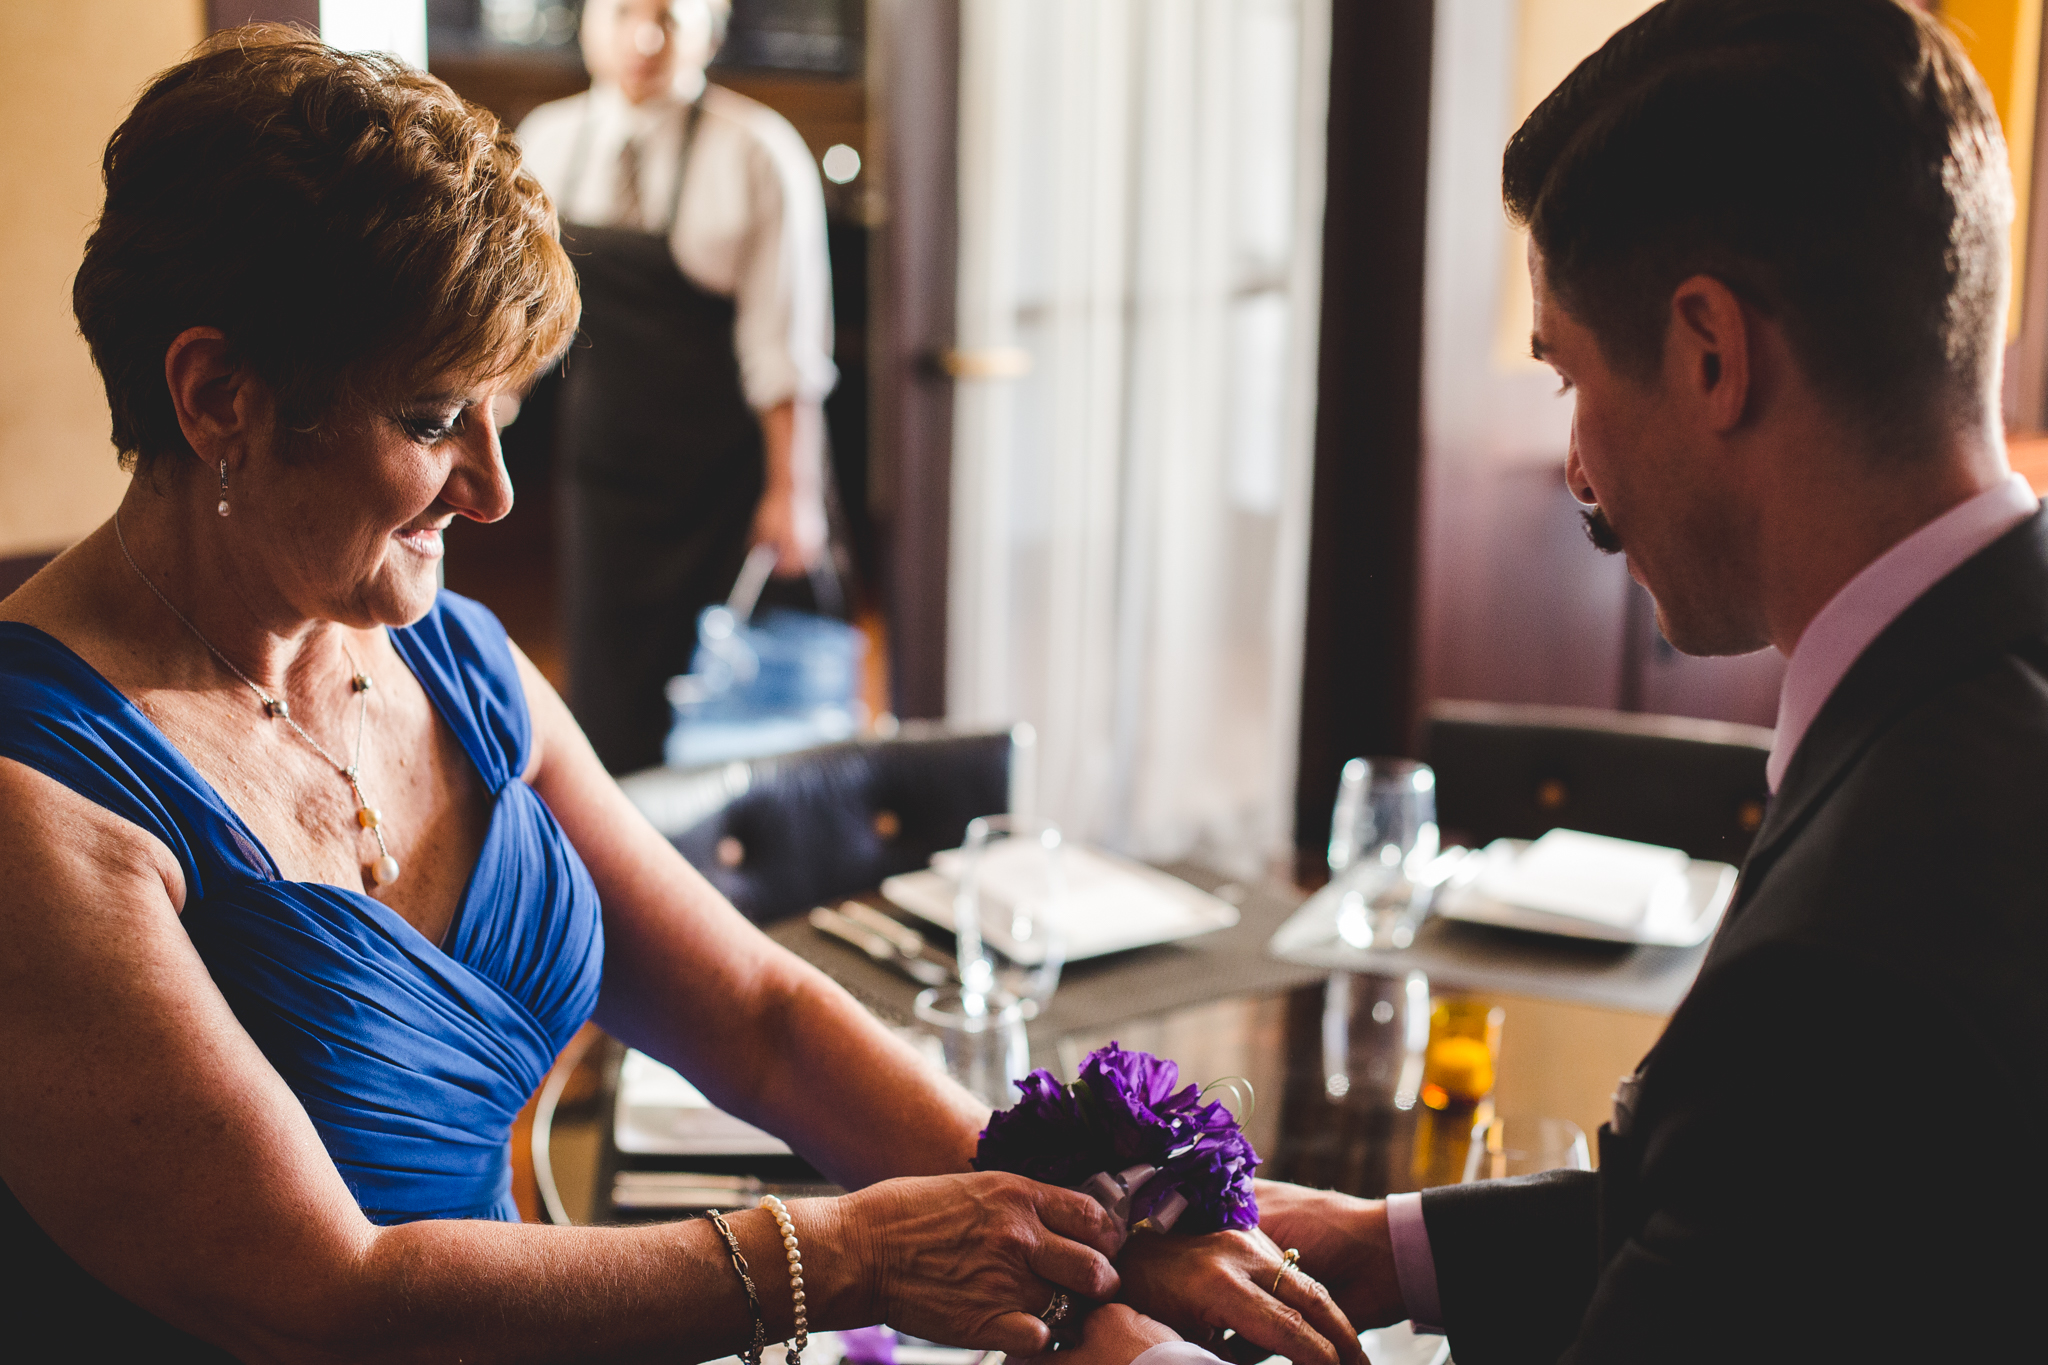 chad groom puts corsage onto mother of bride